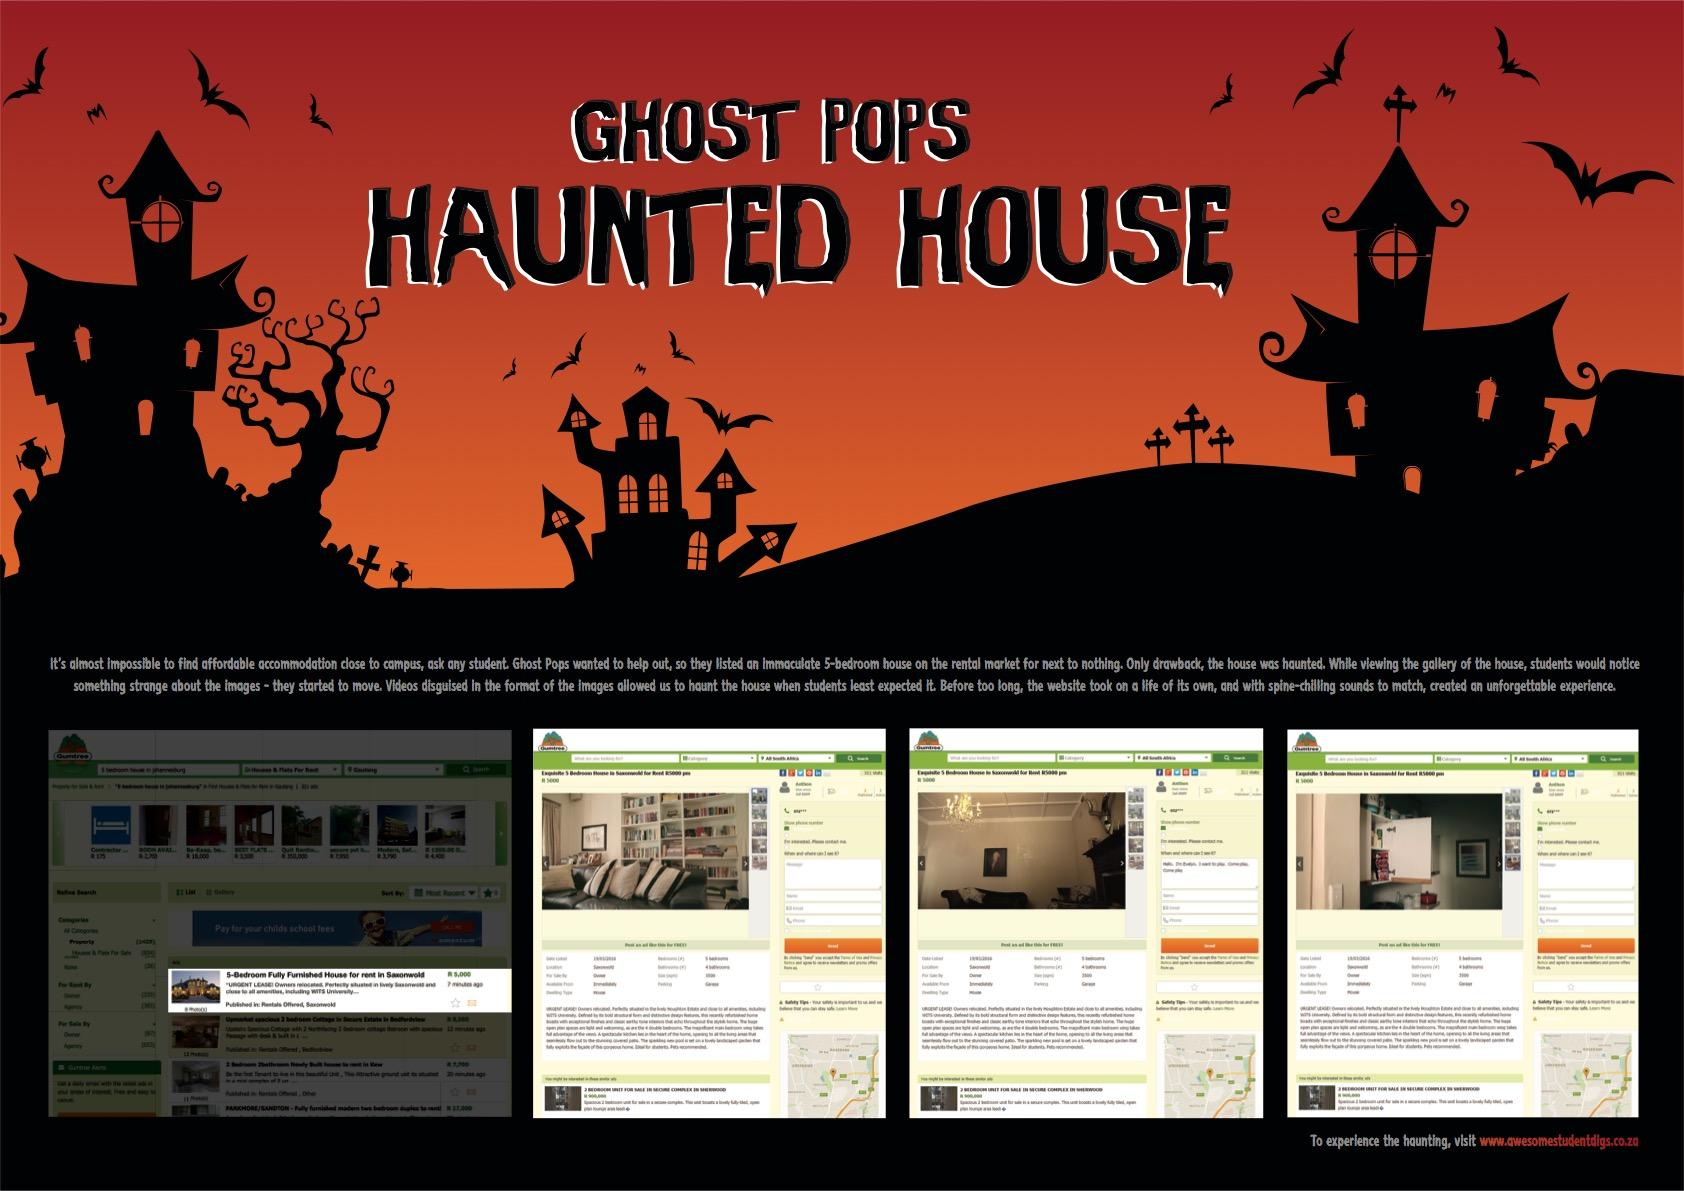 Ghost Pops Digital Advert By MC Saatchi Haunted House